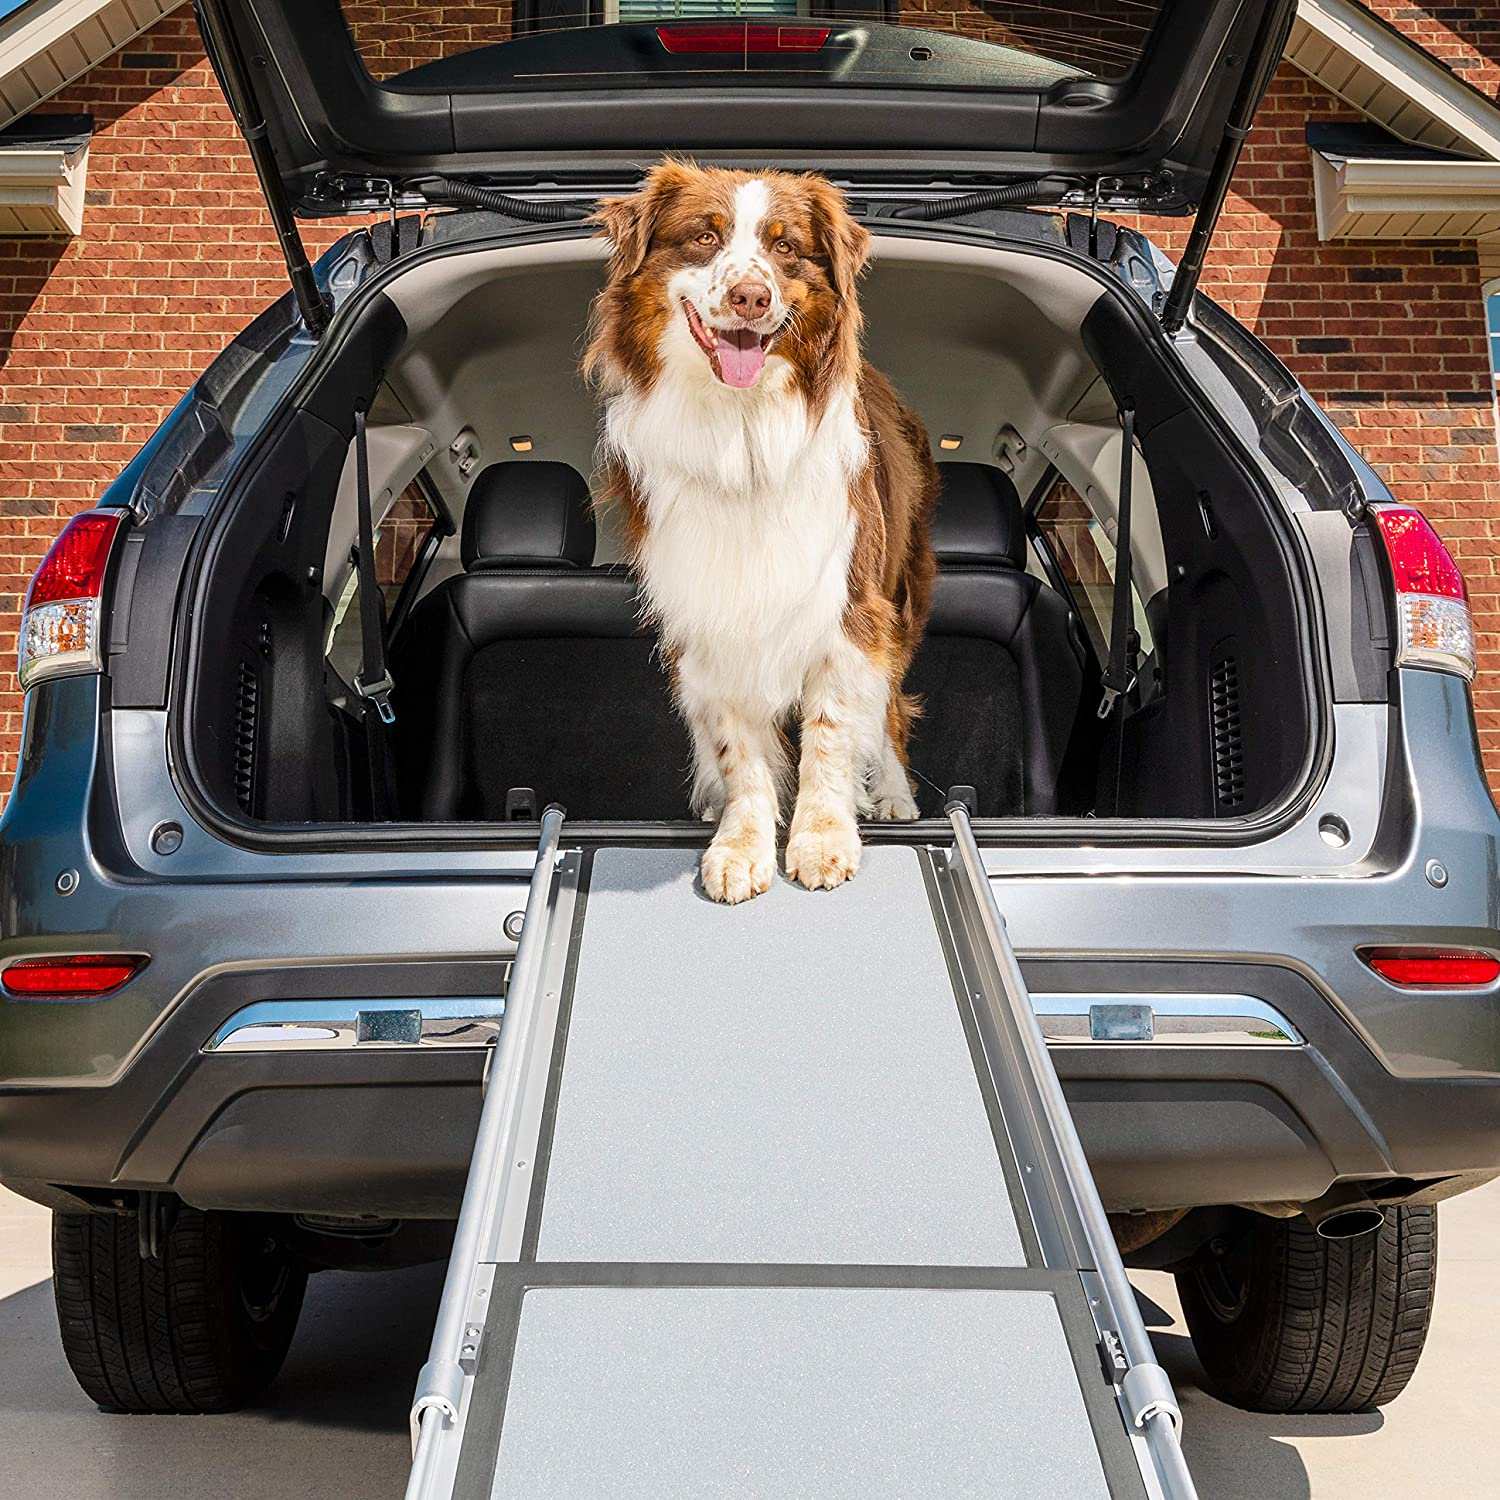 Petsafe Happy Ride Deluxe Telescoping Pet Ramp 72 Inch Portable Lightweight Aluminum Dog And Cat Ramp Carrying Case Available Pet Door Safety Ramps Pet Supplies